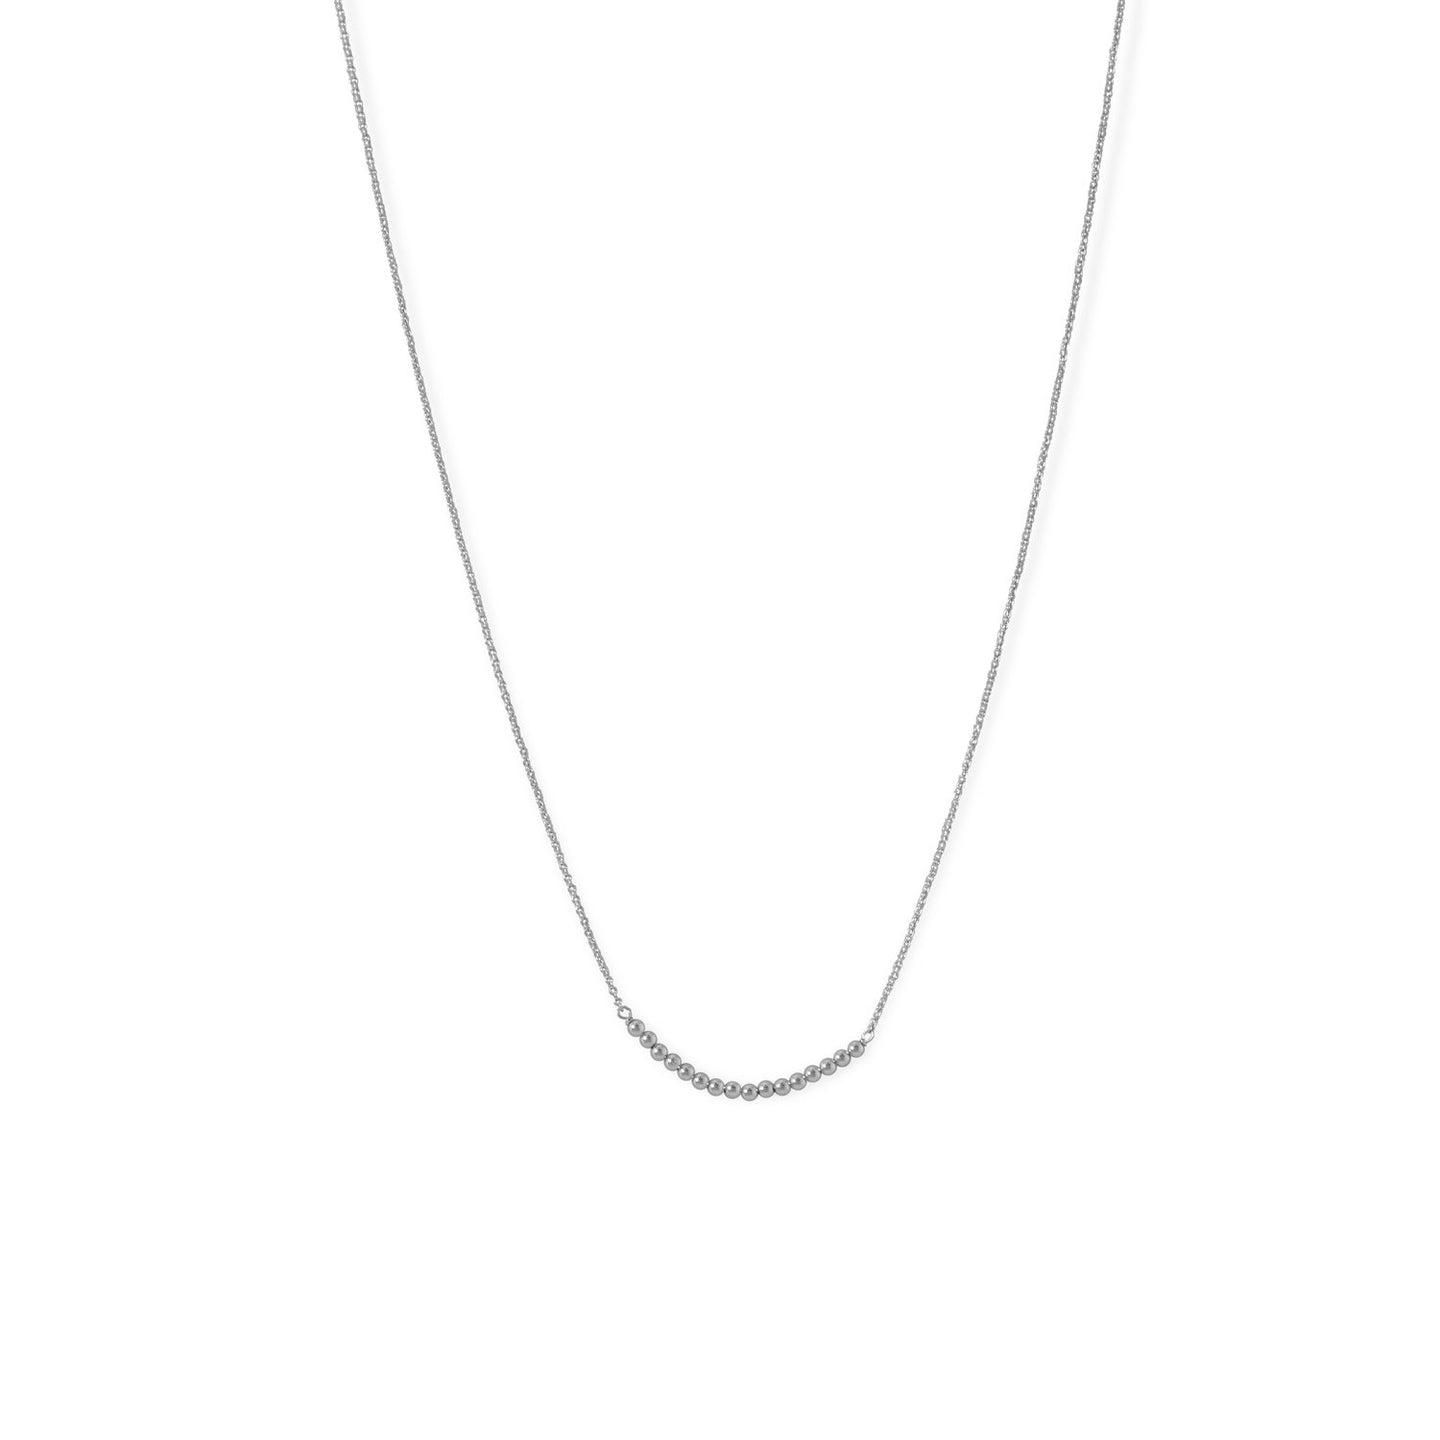 Rhodium Plated 2mm Bead Bar Necklace at 3 Barn Swallows, $47